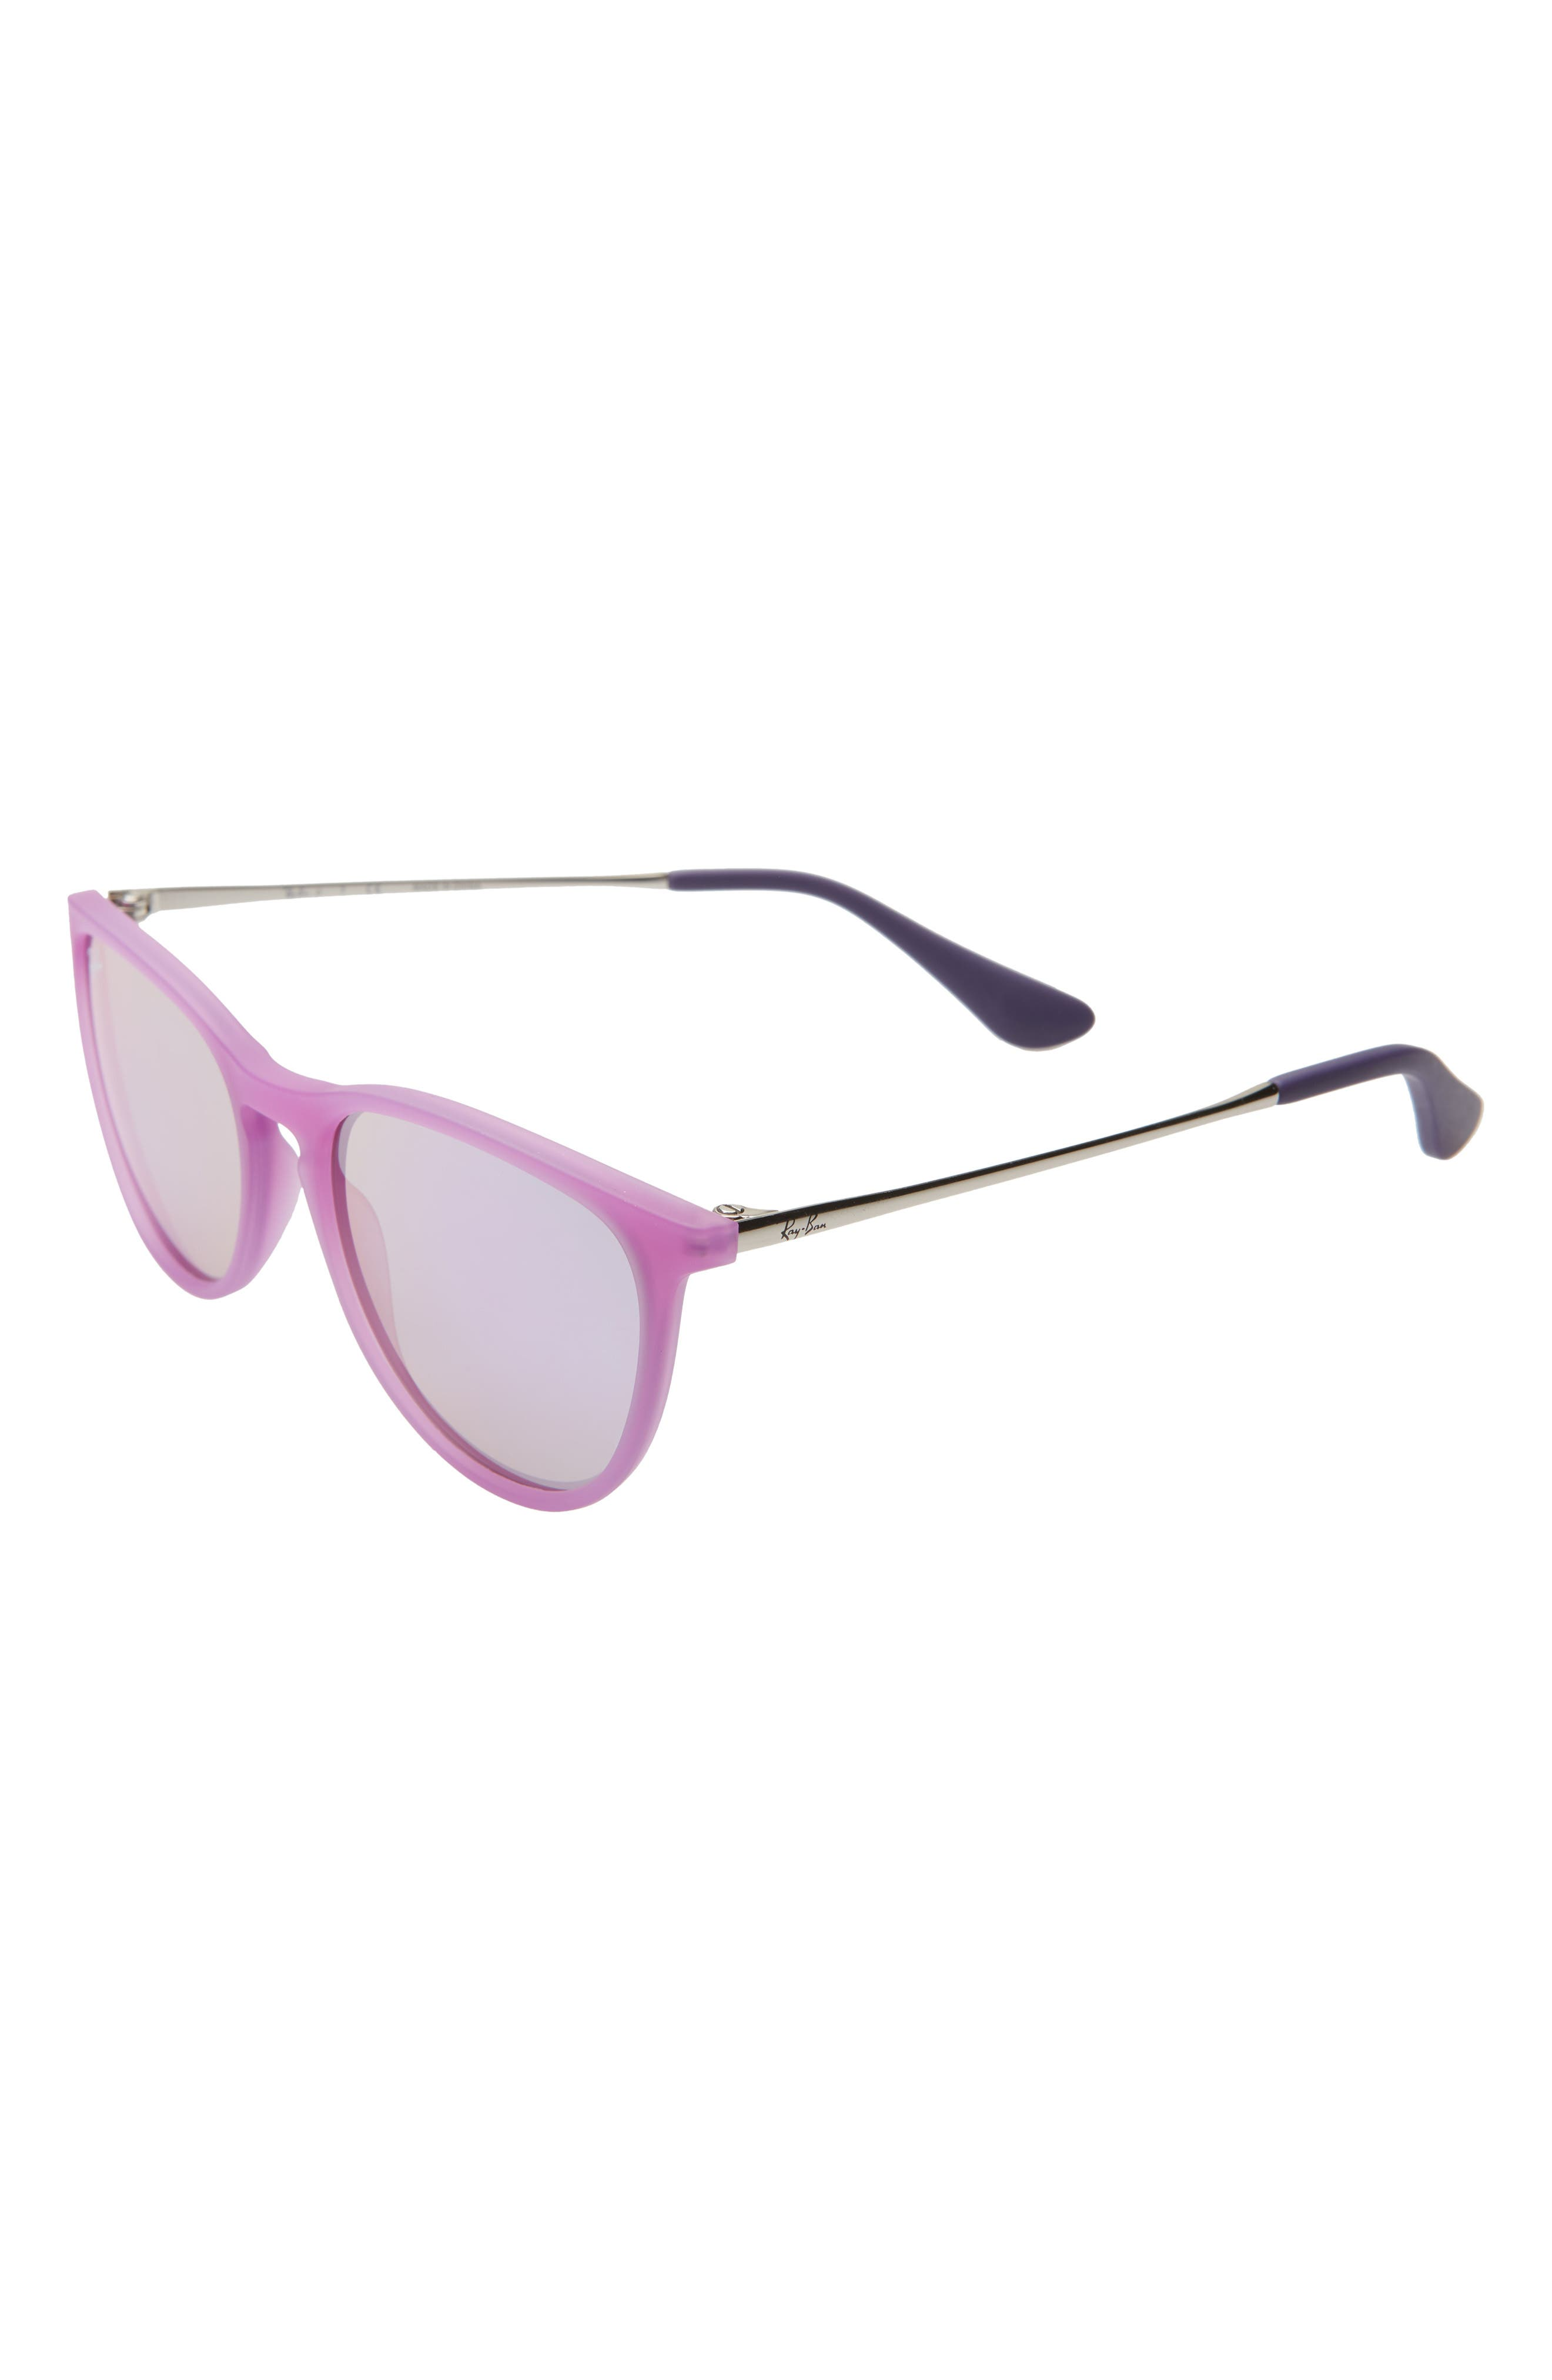 ray-bay junior izzy 50mm mirrored sunglasses - ultra violet/ violet mirror